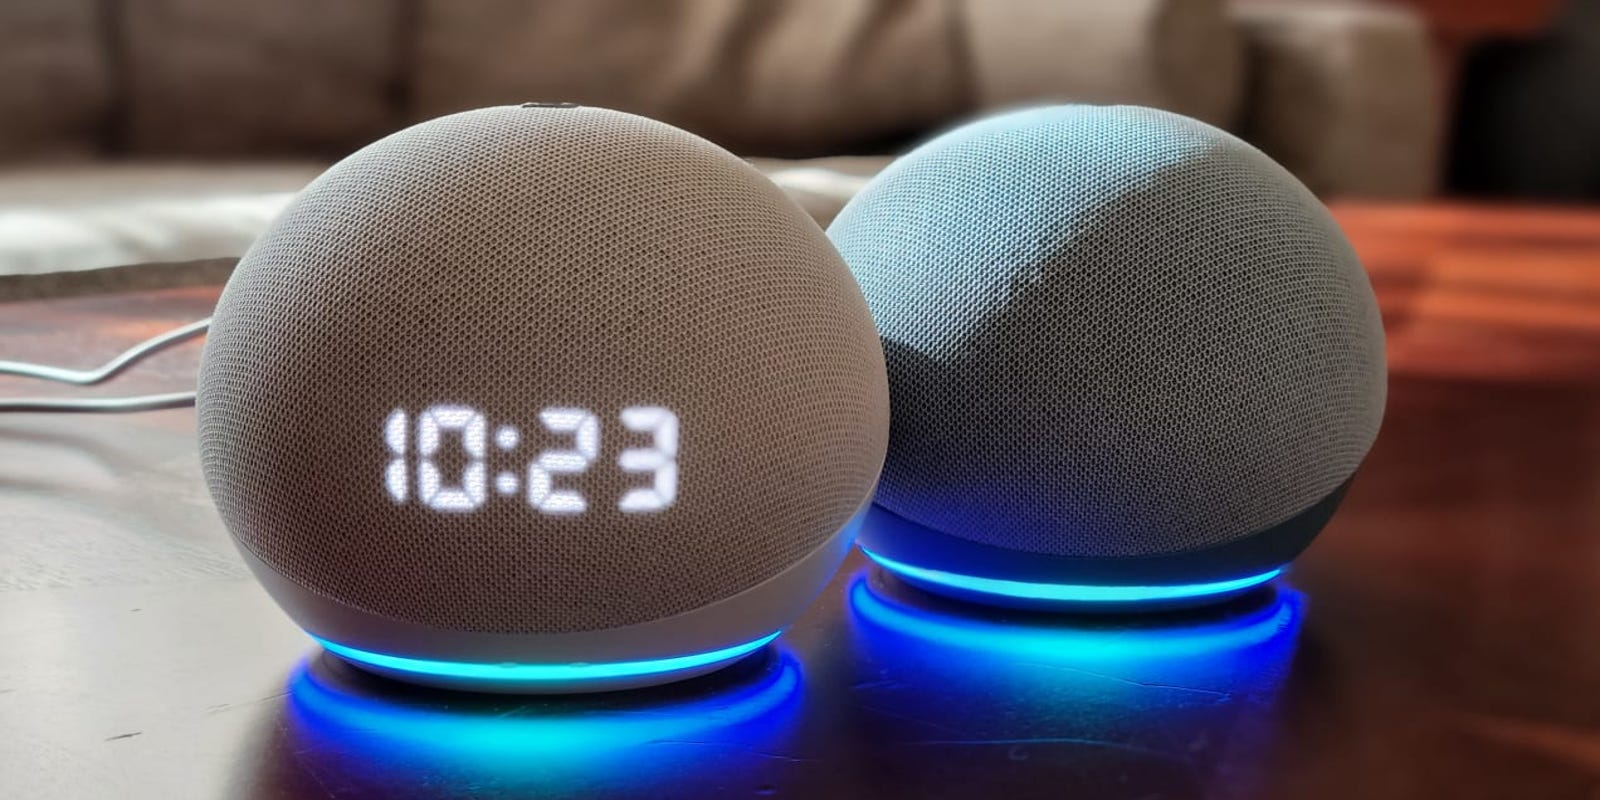 You can get the latest Echo Dot smart speaker for a steal right now